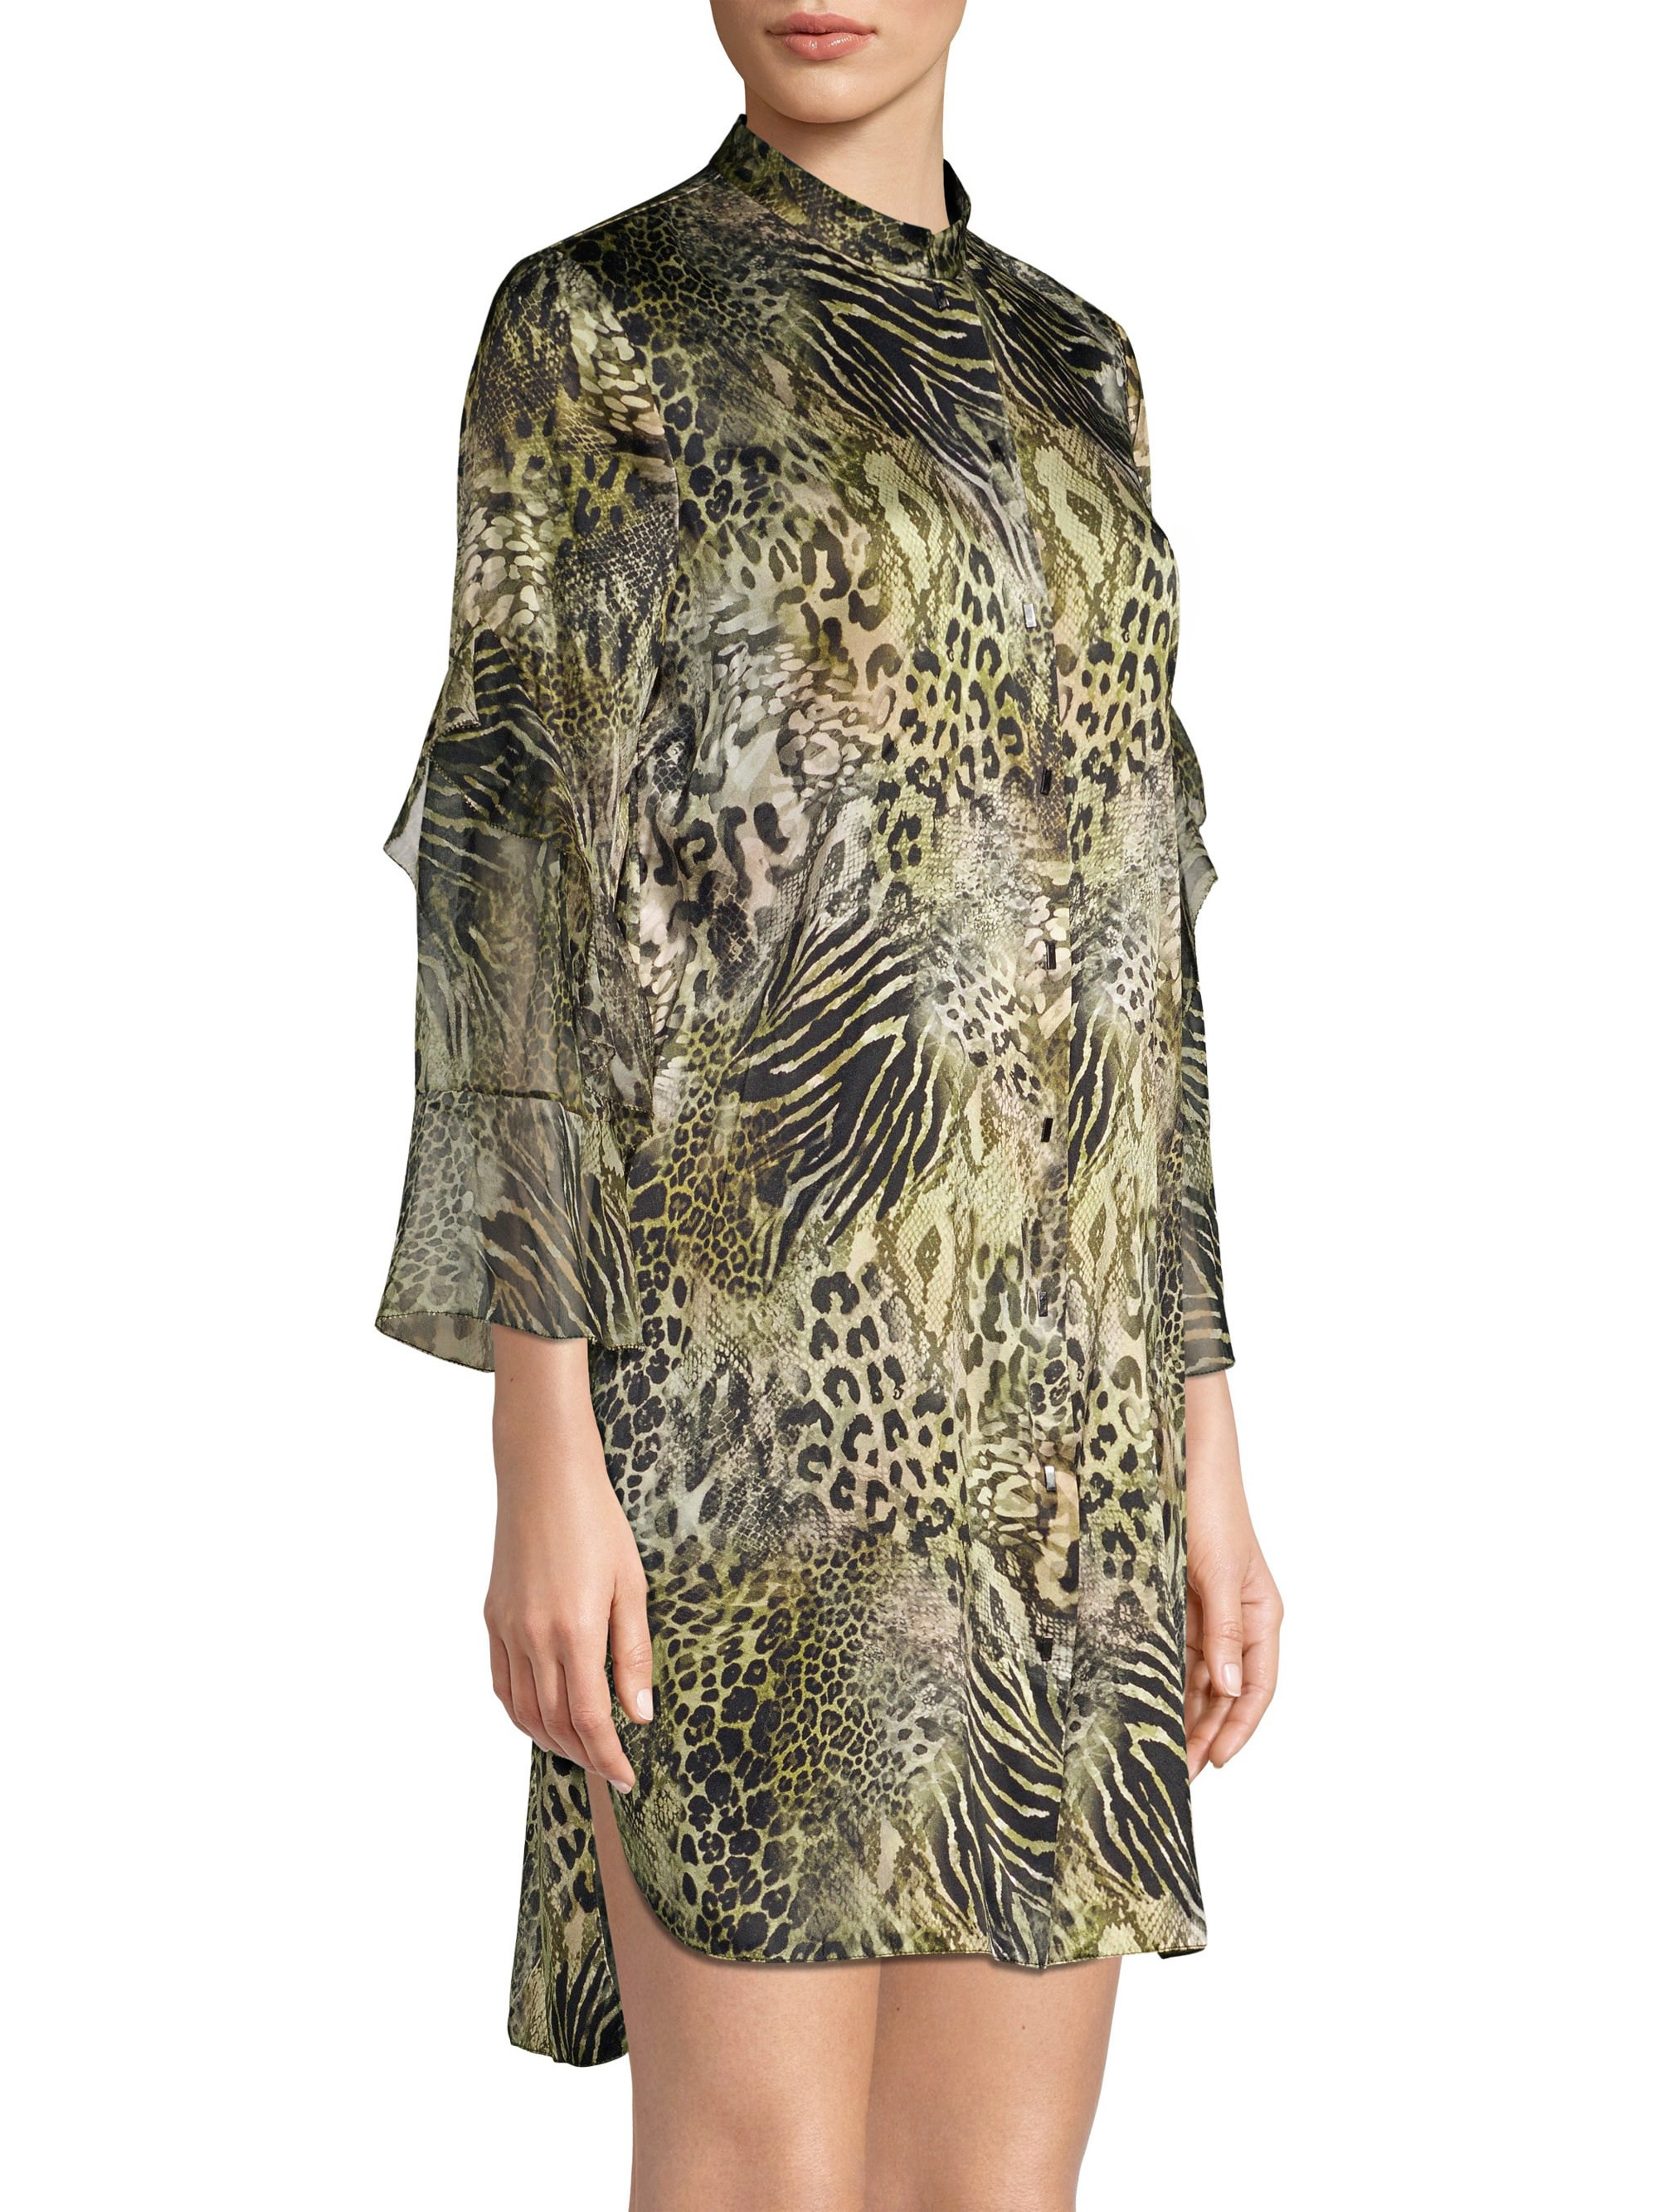 6960d52f0fcc Elie Tahari Sawyer Safari Animal Print Silk Dress - Olivine Multi X-Small